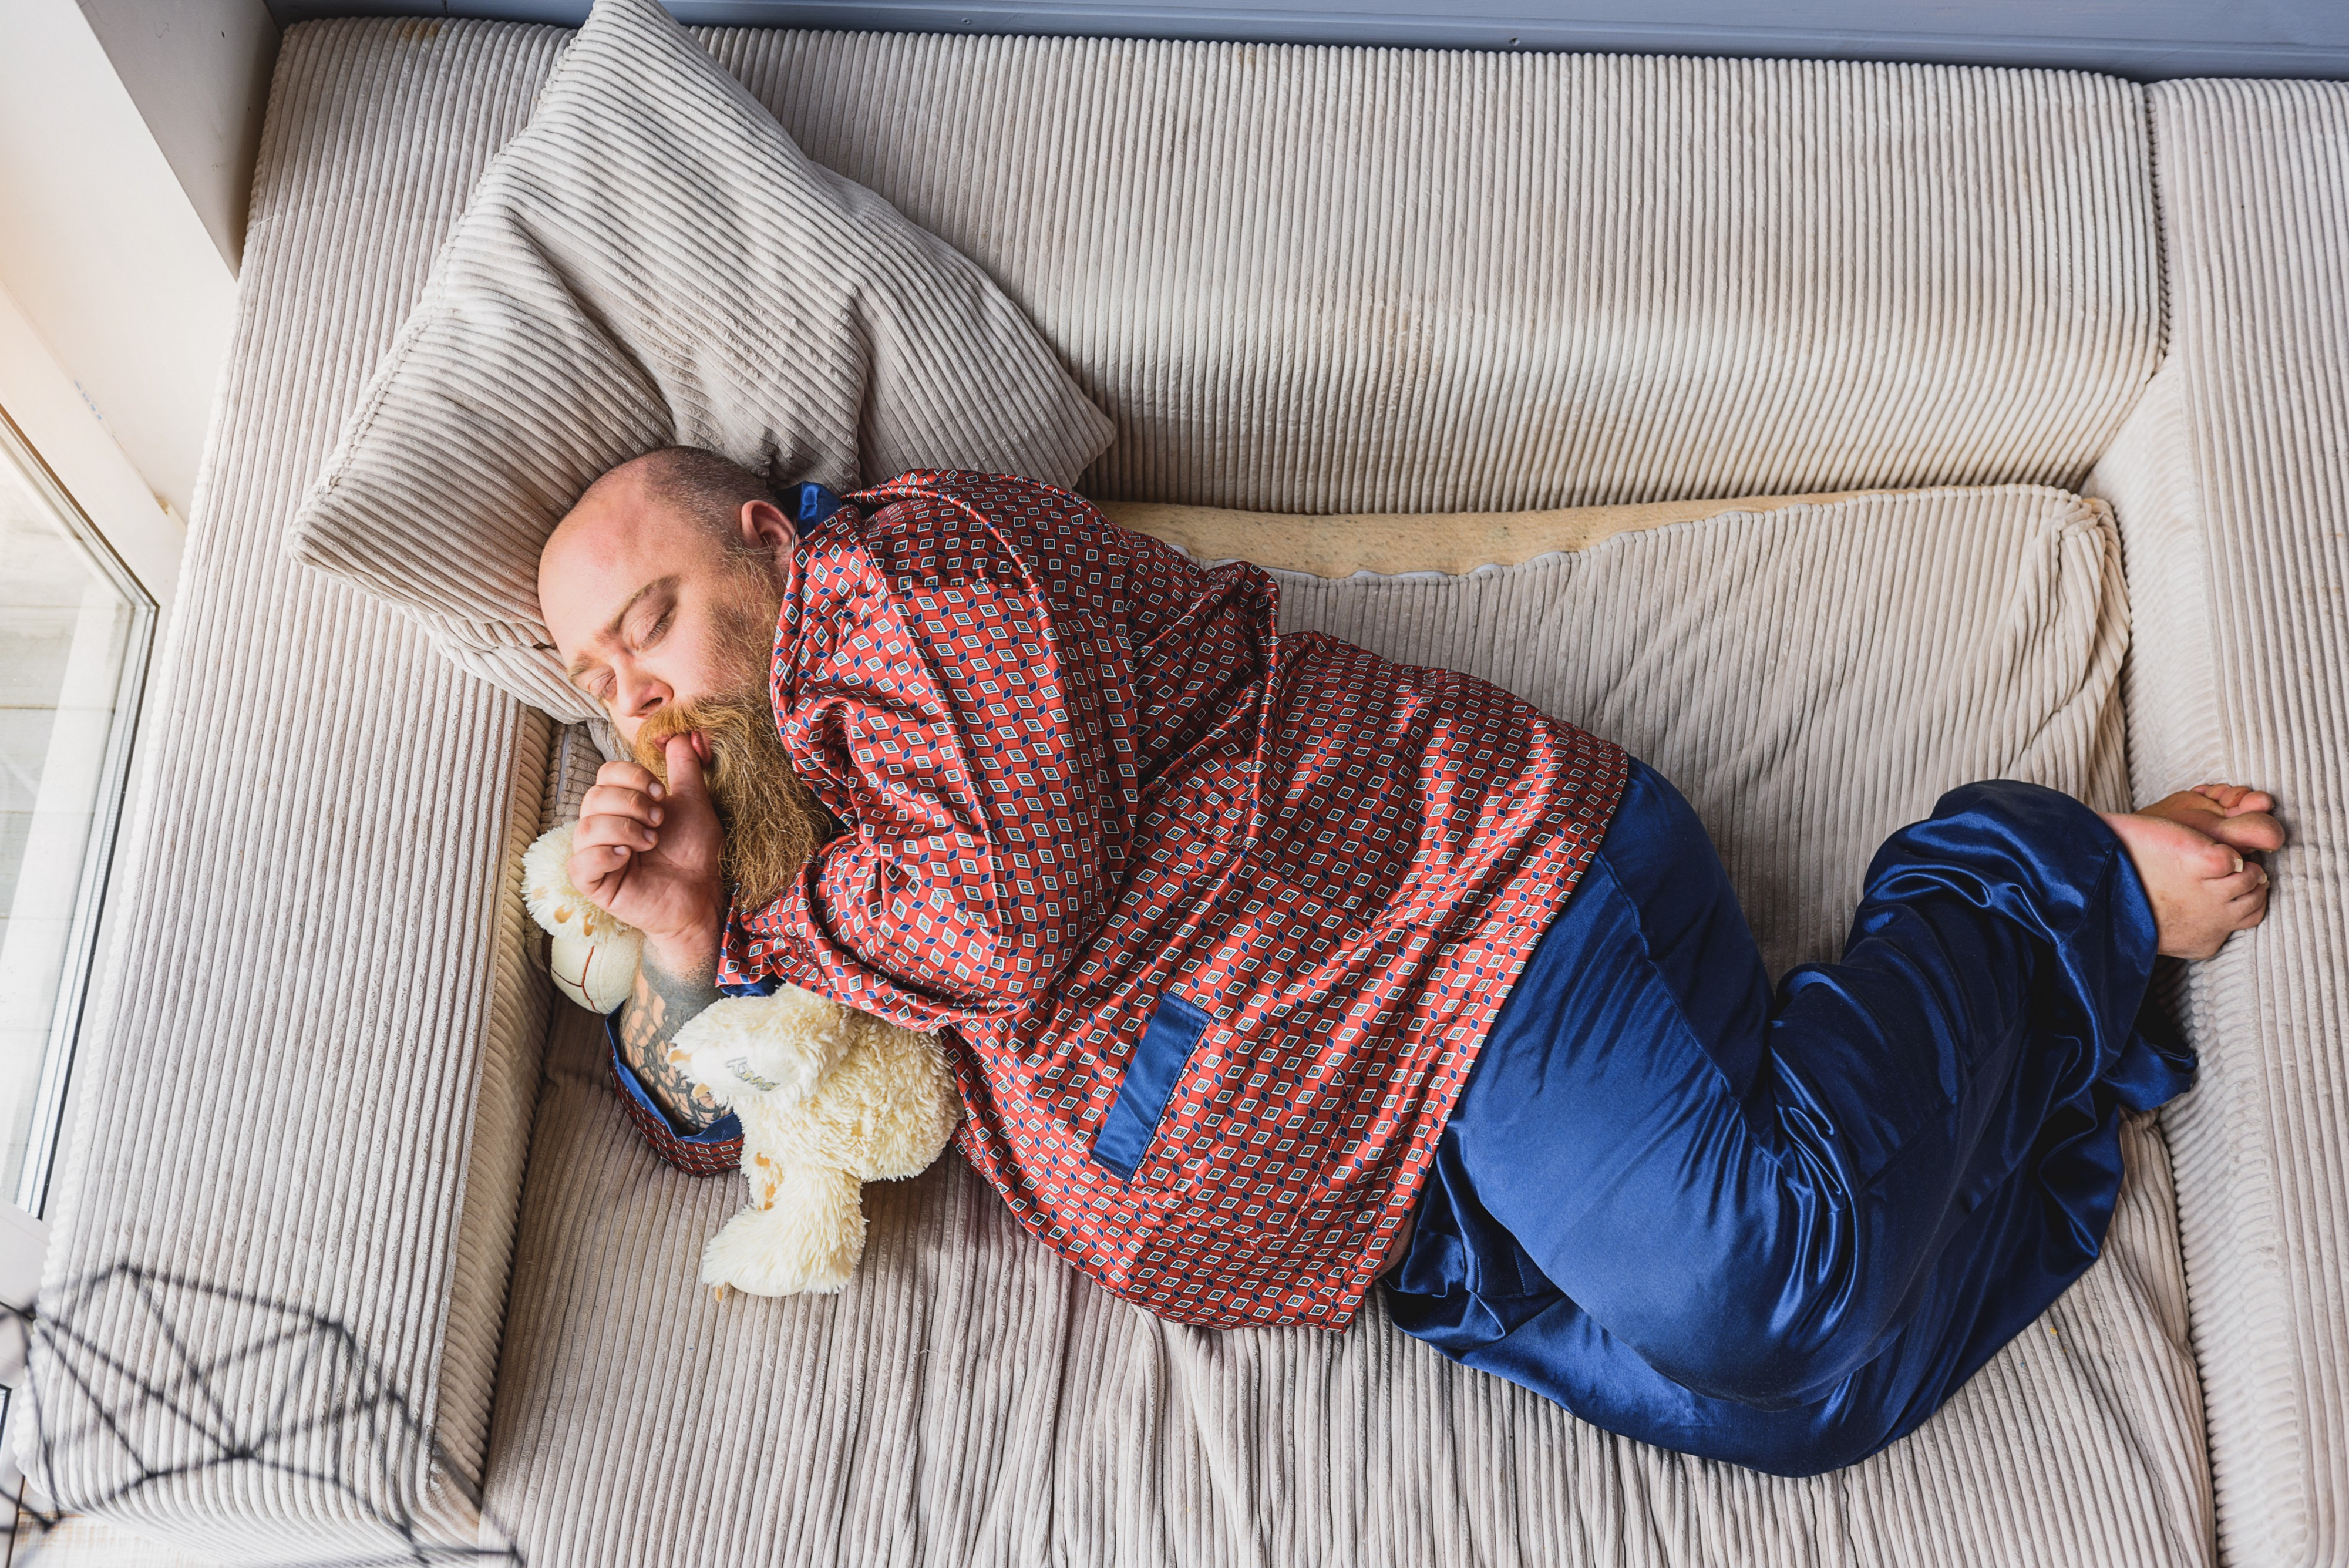 Middle aged fat mad in silk pajamas sleeps on sofa sucking his thumb and holding a teddy bear